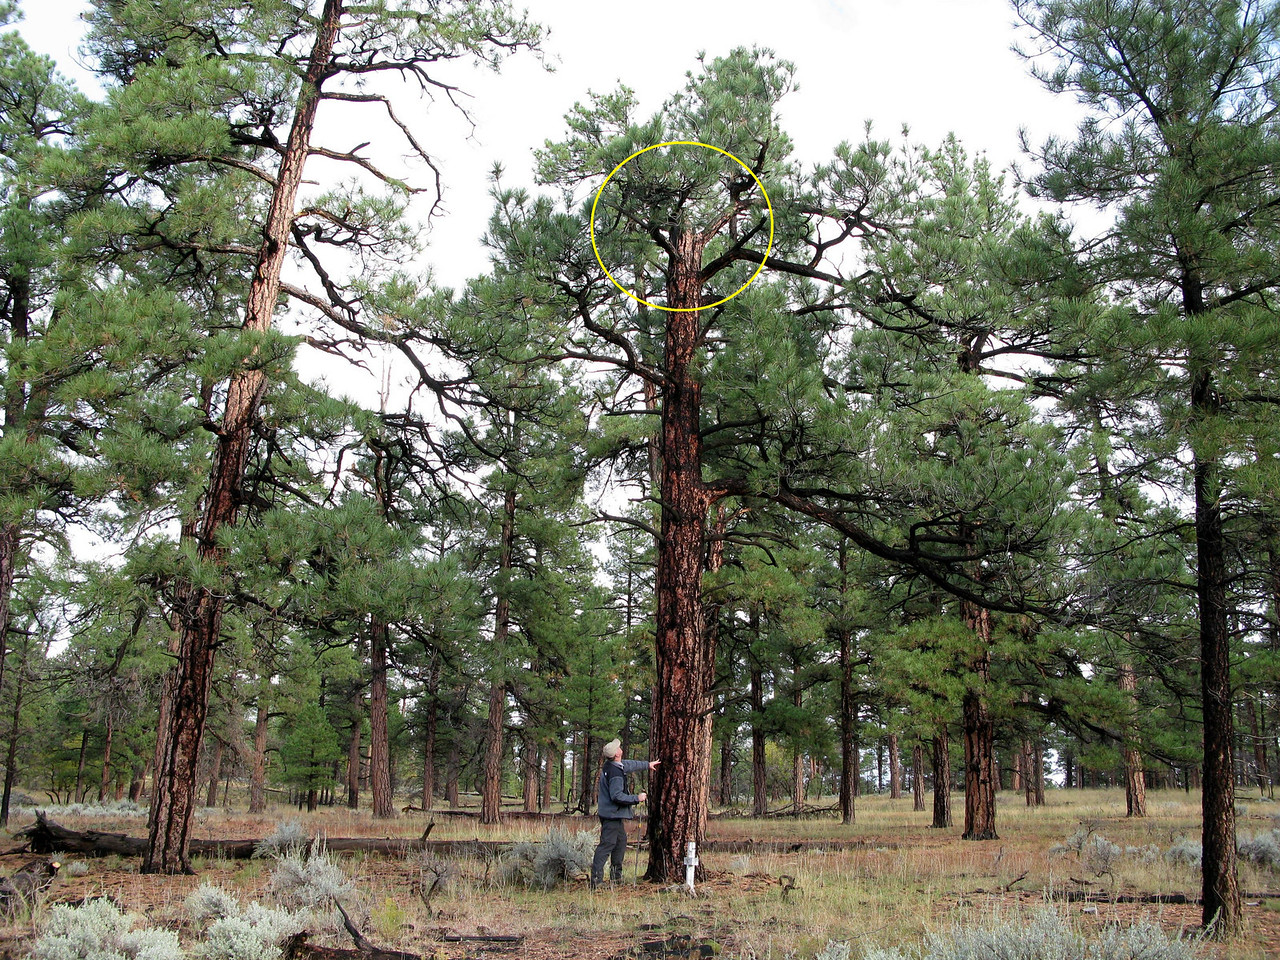 The aircraft initially struck the top of this 60 foot Ponderosa Pine tree breaking off about 16 feet of the upper section which was found lying at the base of the tree.